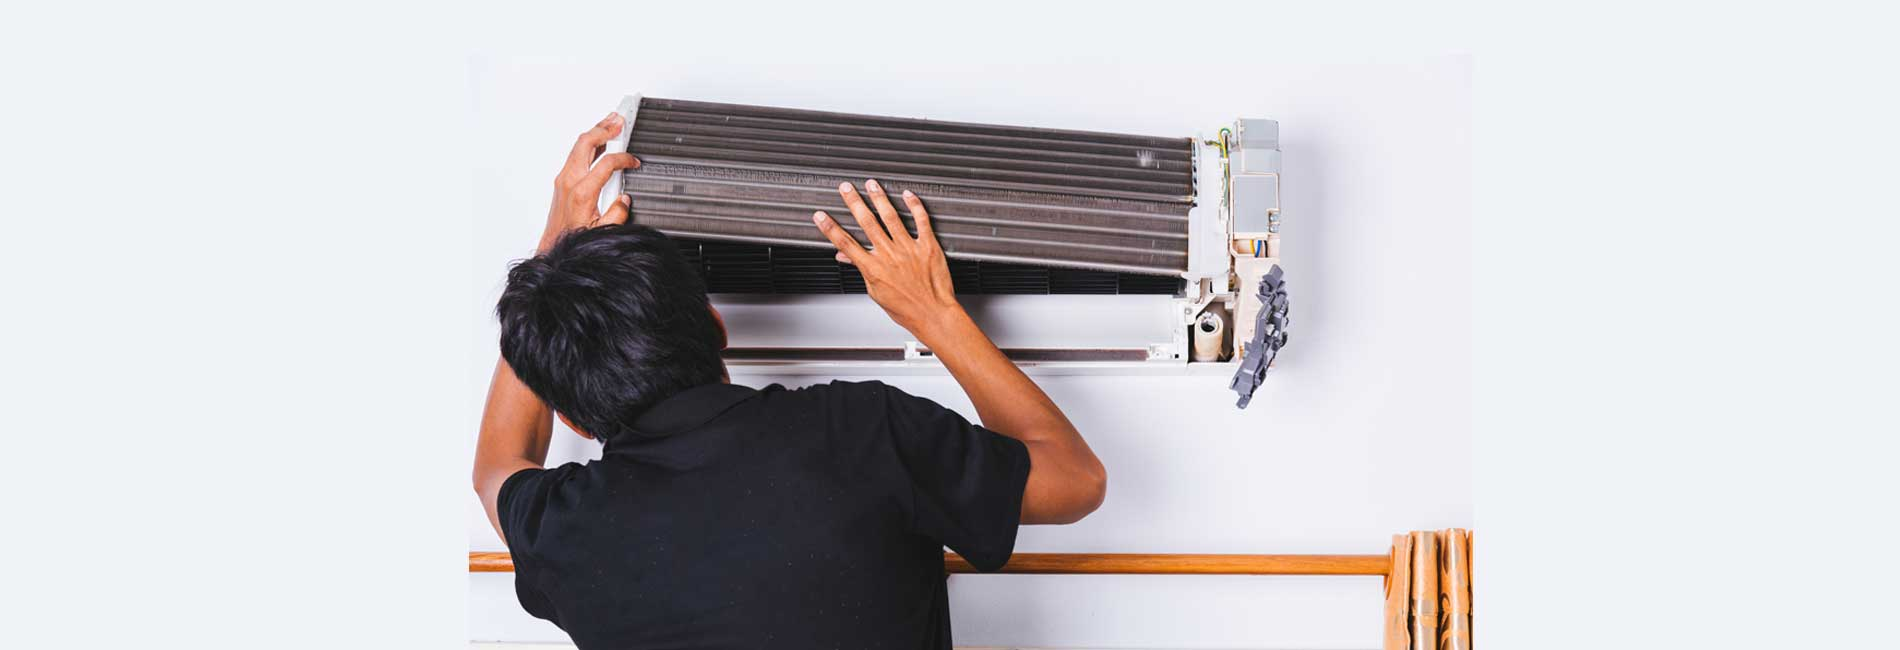 Hitachi AC Uninstallation and Installation in Oragadam